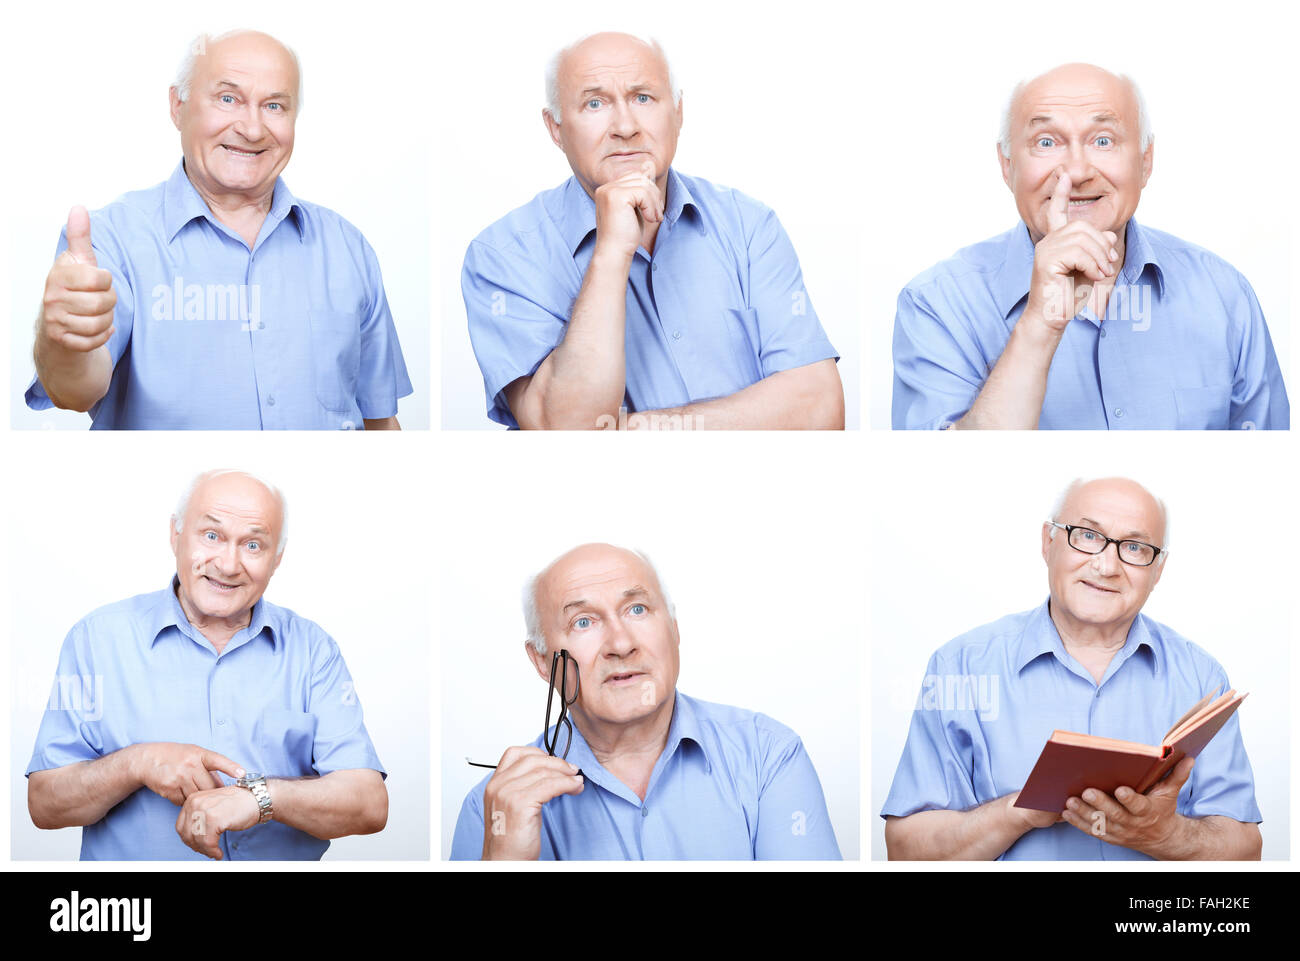 Senior man acting differently for each photo. - Stock Image